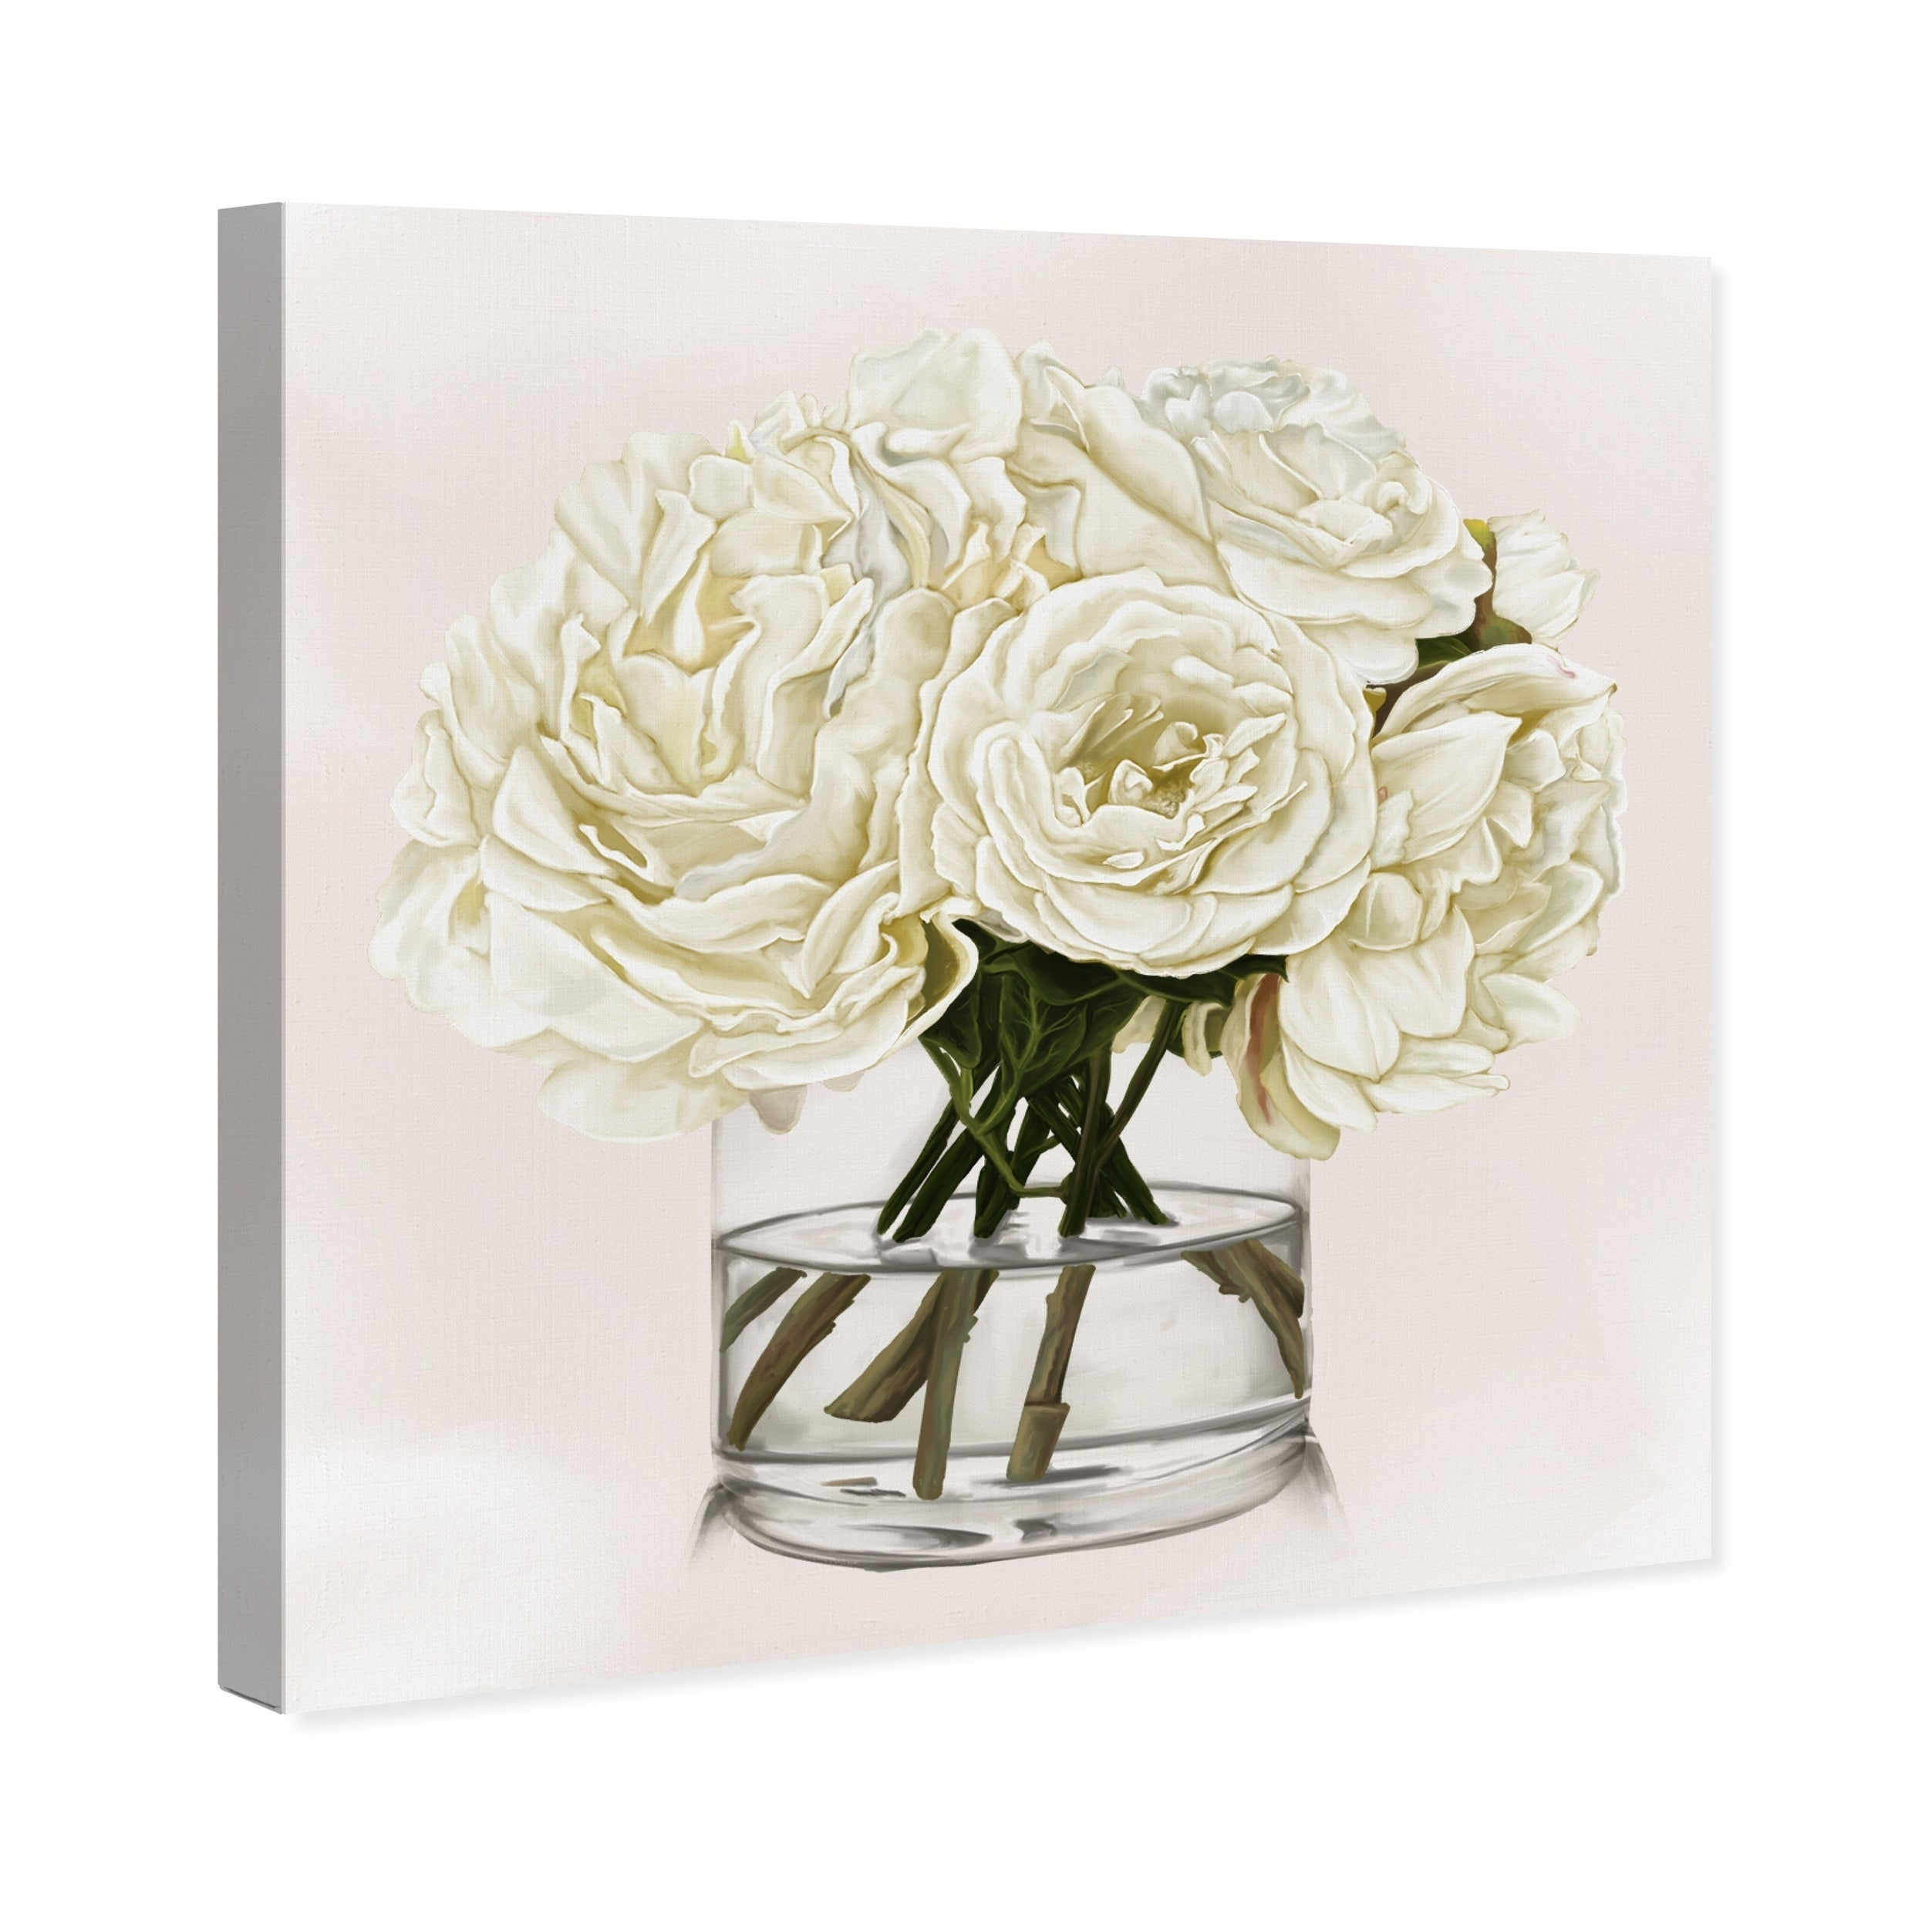 Oliver Gal White Floral Floral And Botanical Wall Art Canvas Print White Green Overstock 28844656